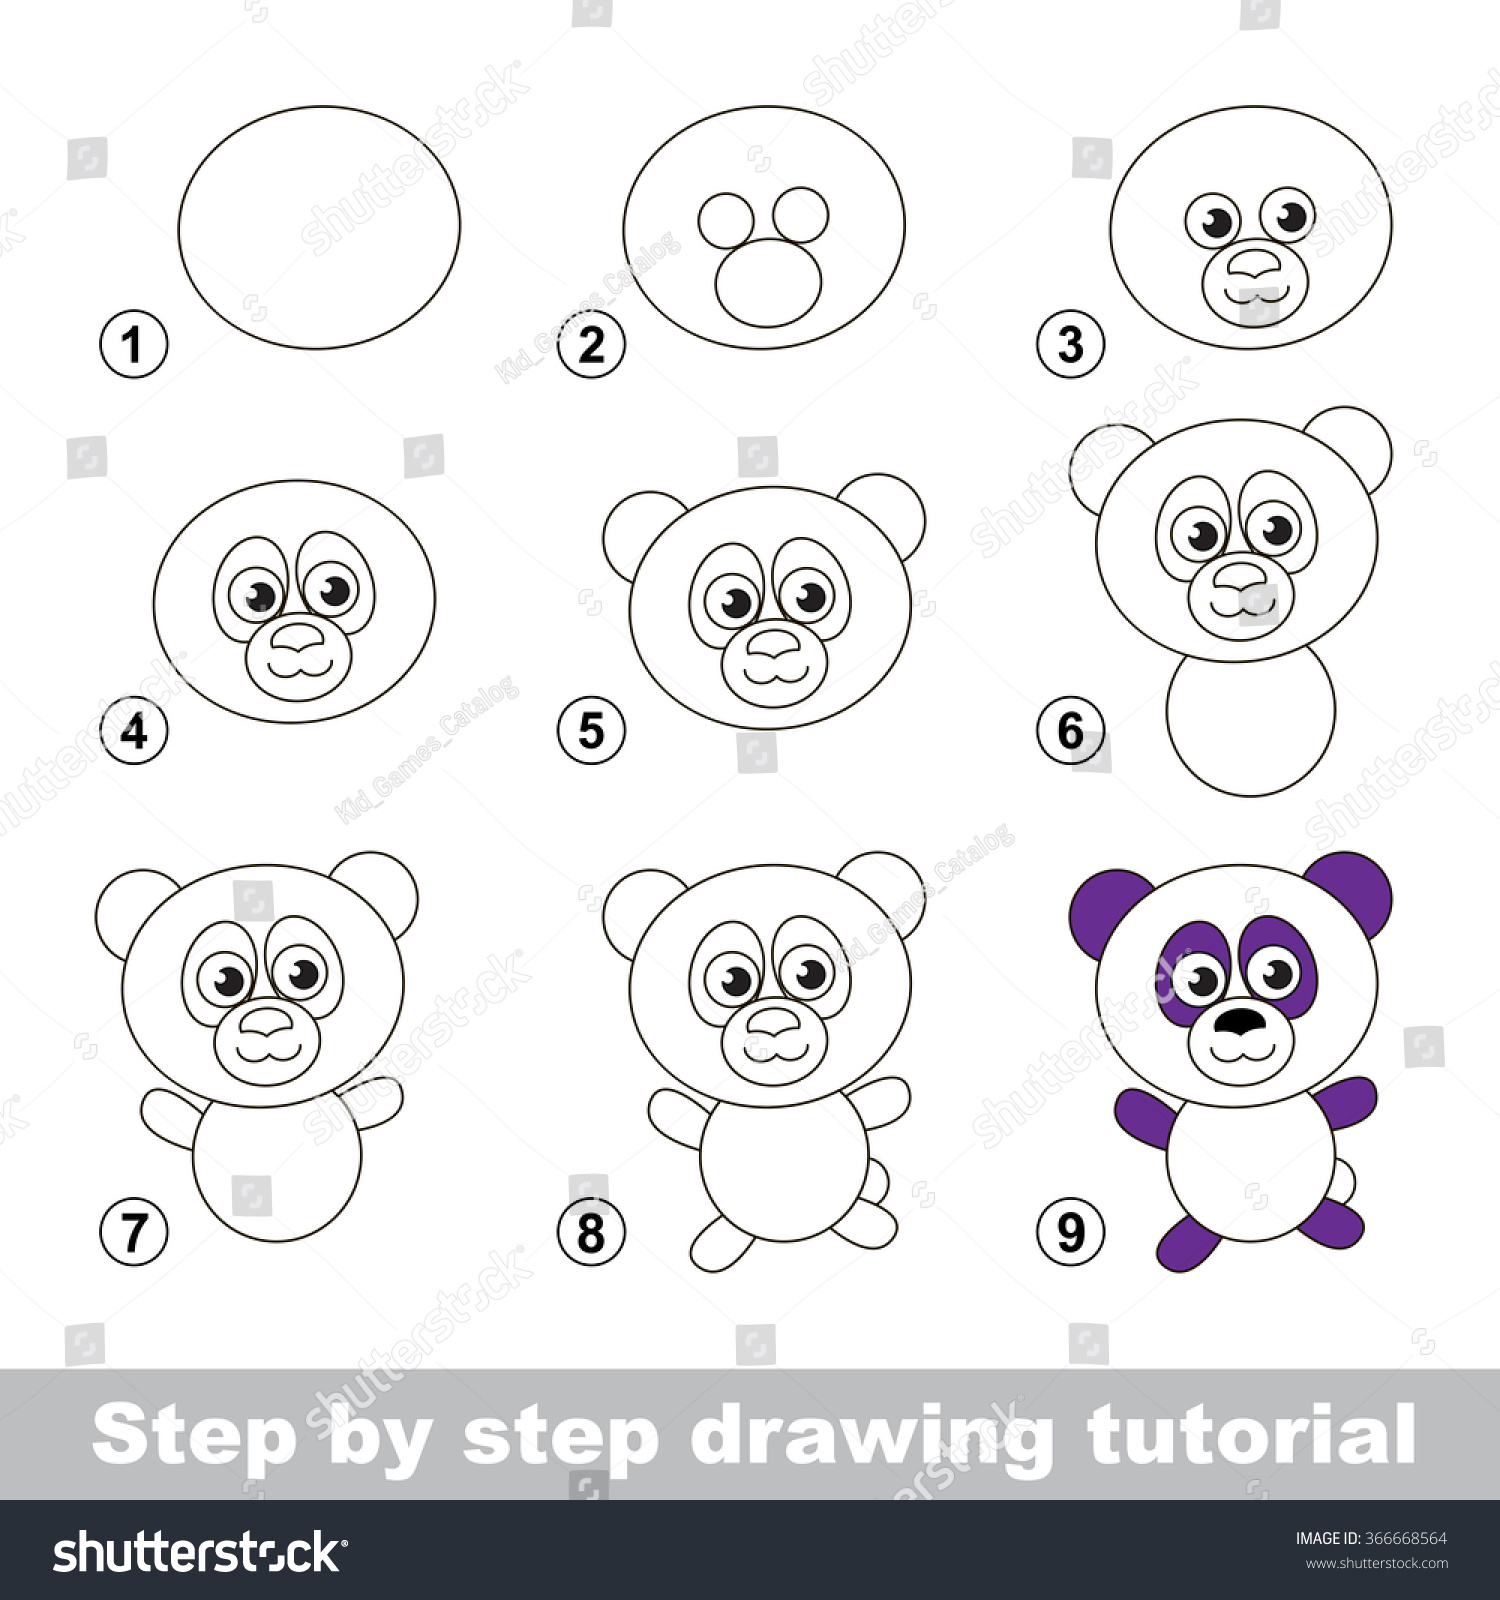 Step by step drawing tutorial visual stock vector for How to make cartoon drawings step by step